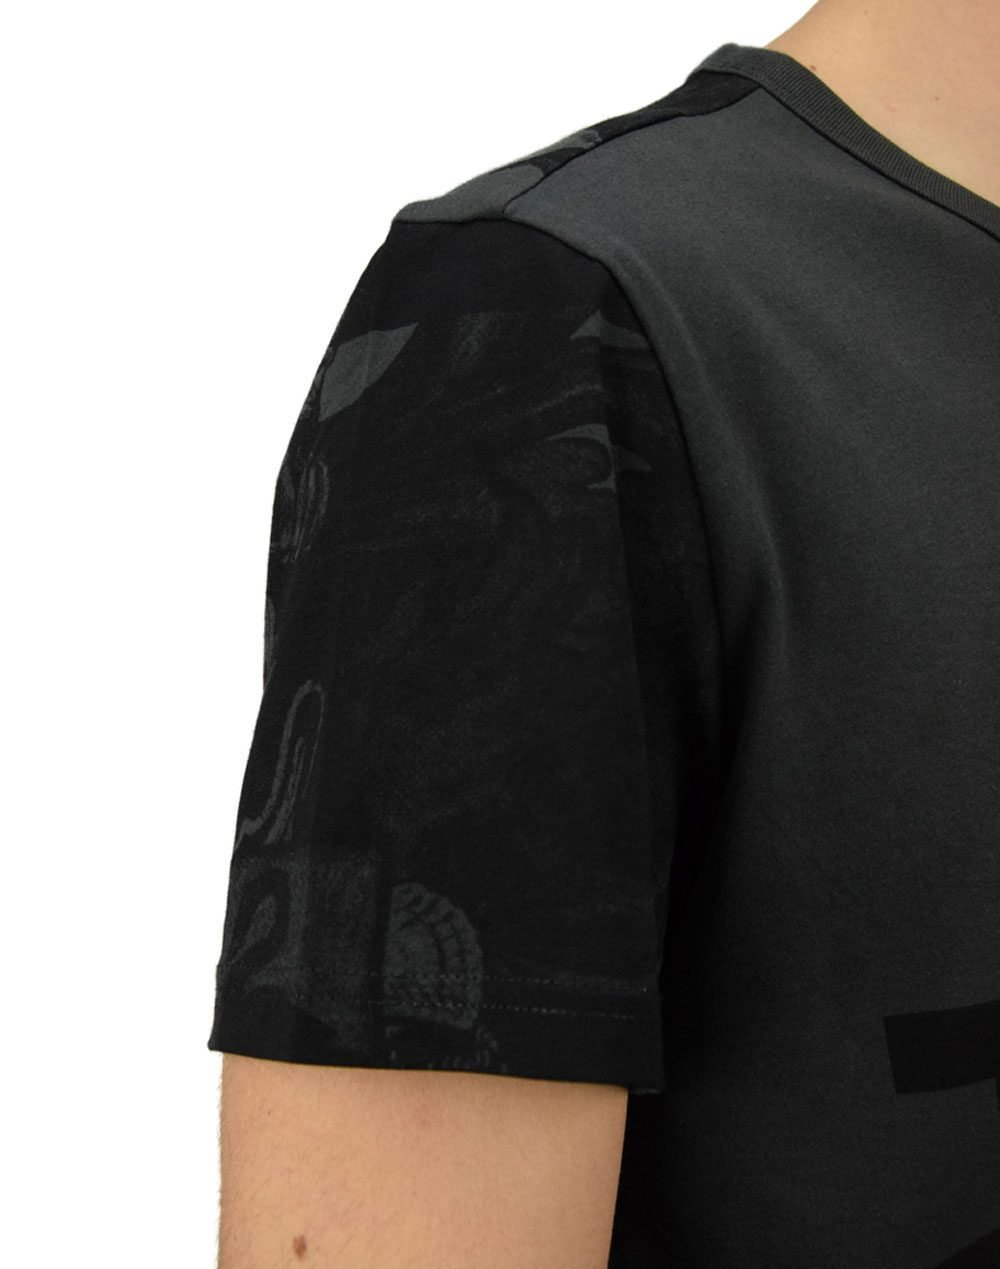 G-Star Raw Graphic 1 Raven (D11855-A924-976)